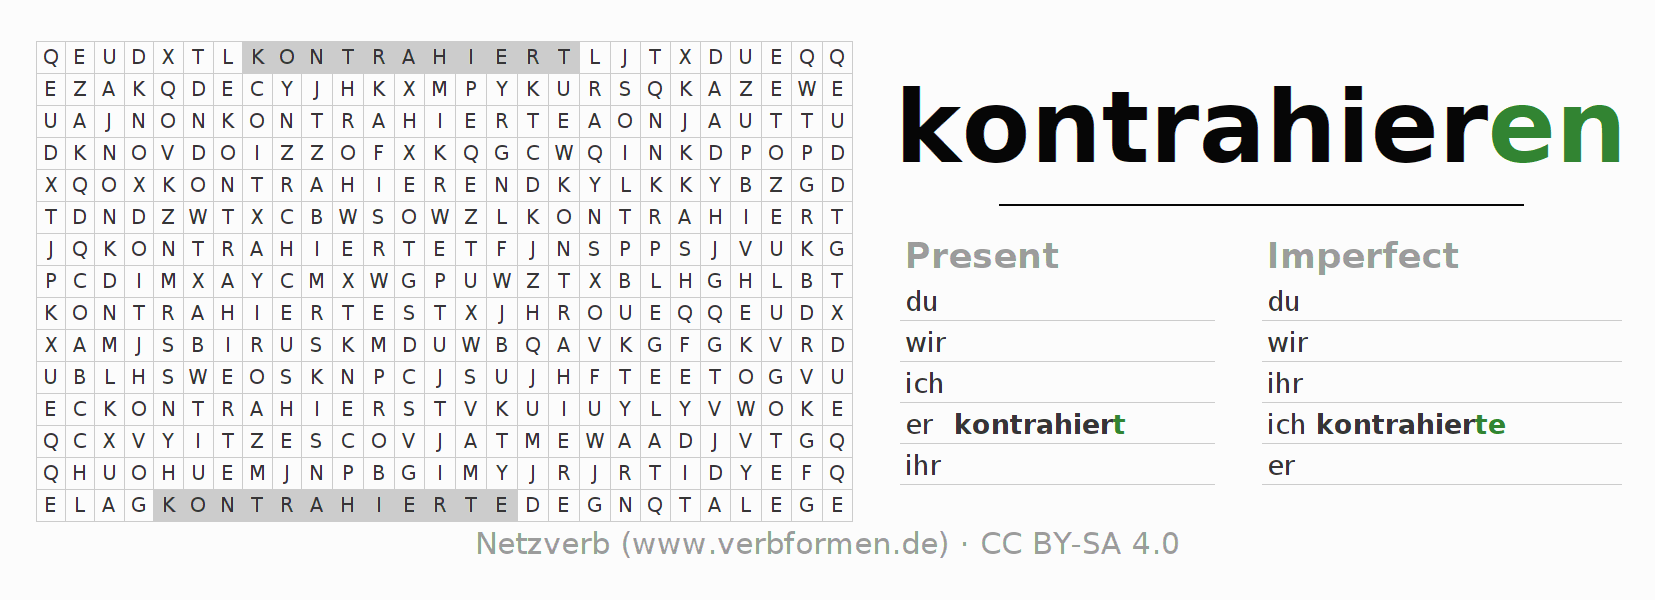 Word search puzzle for the conjugation of the verb kontrahieren